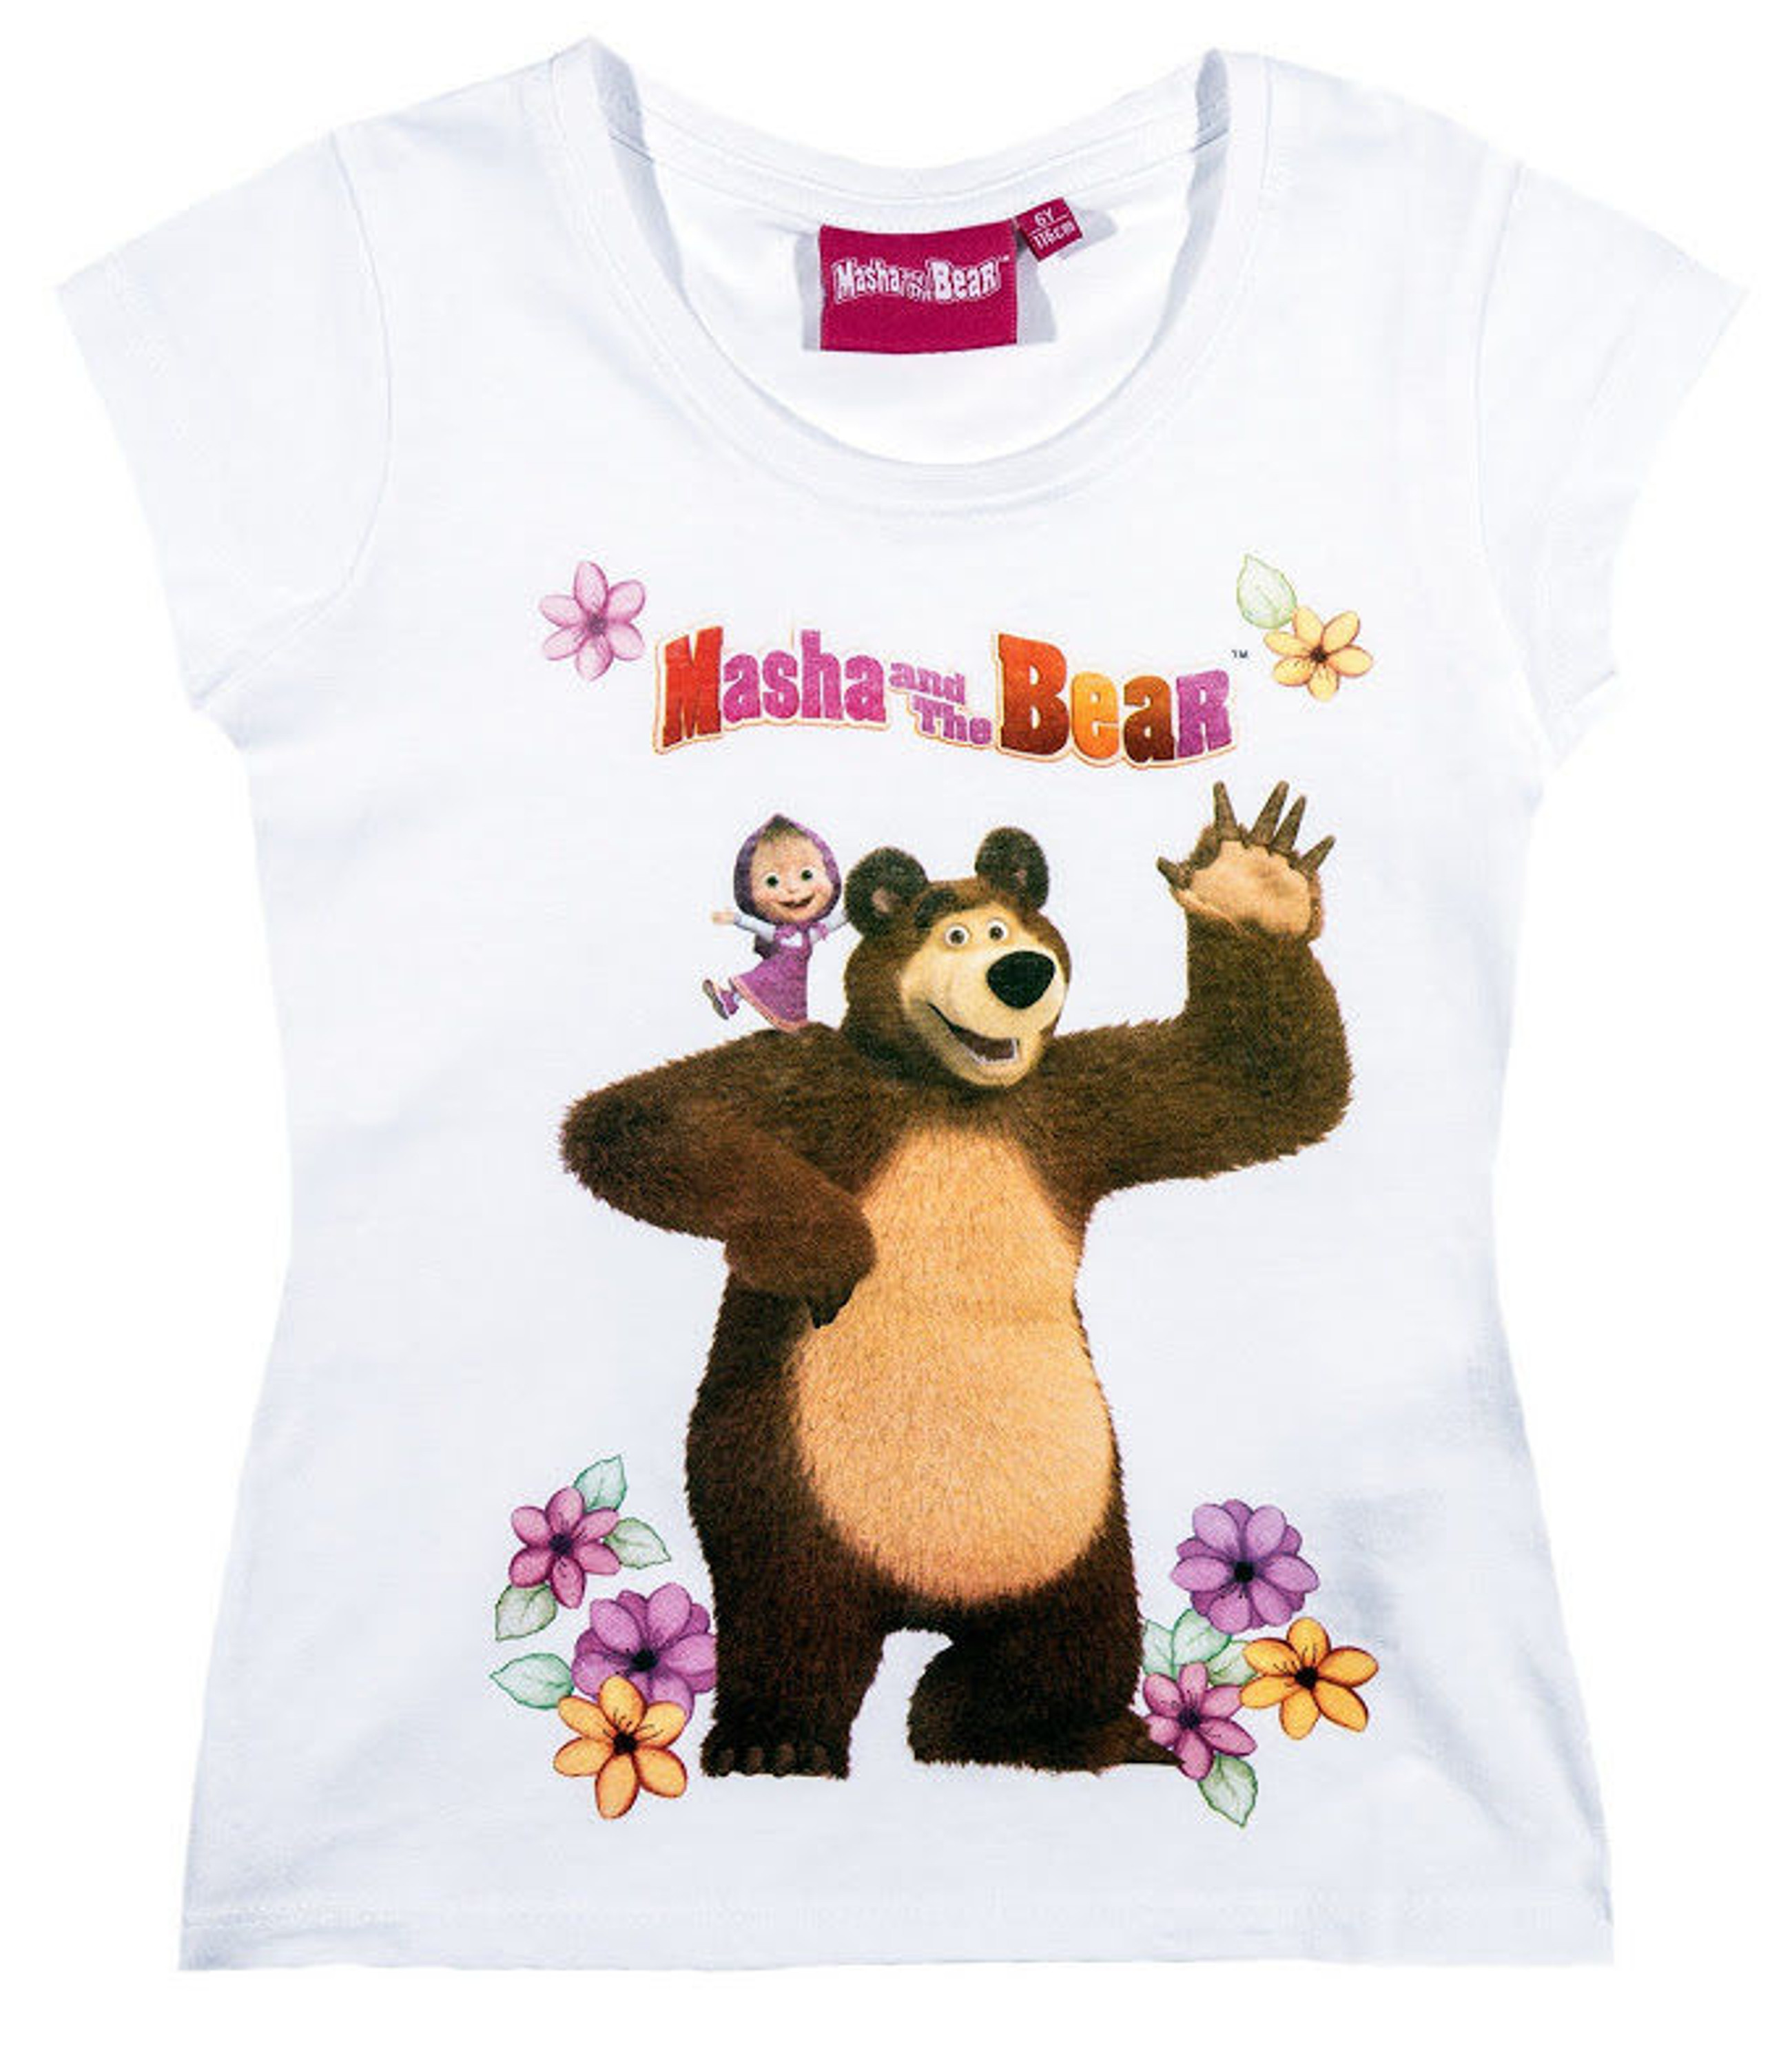 Masha and the Bear kurzarm T-Shirt Masha und der Bär